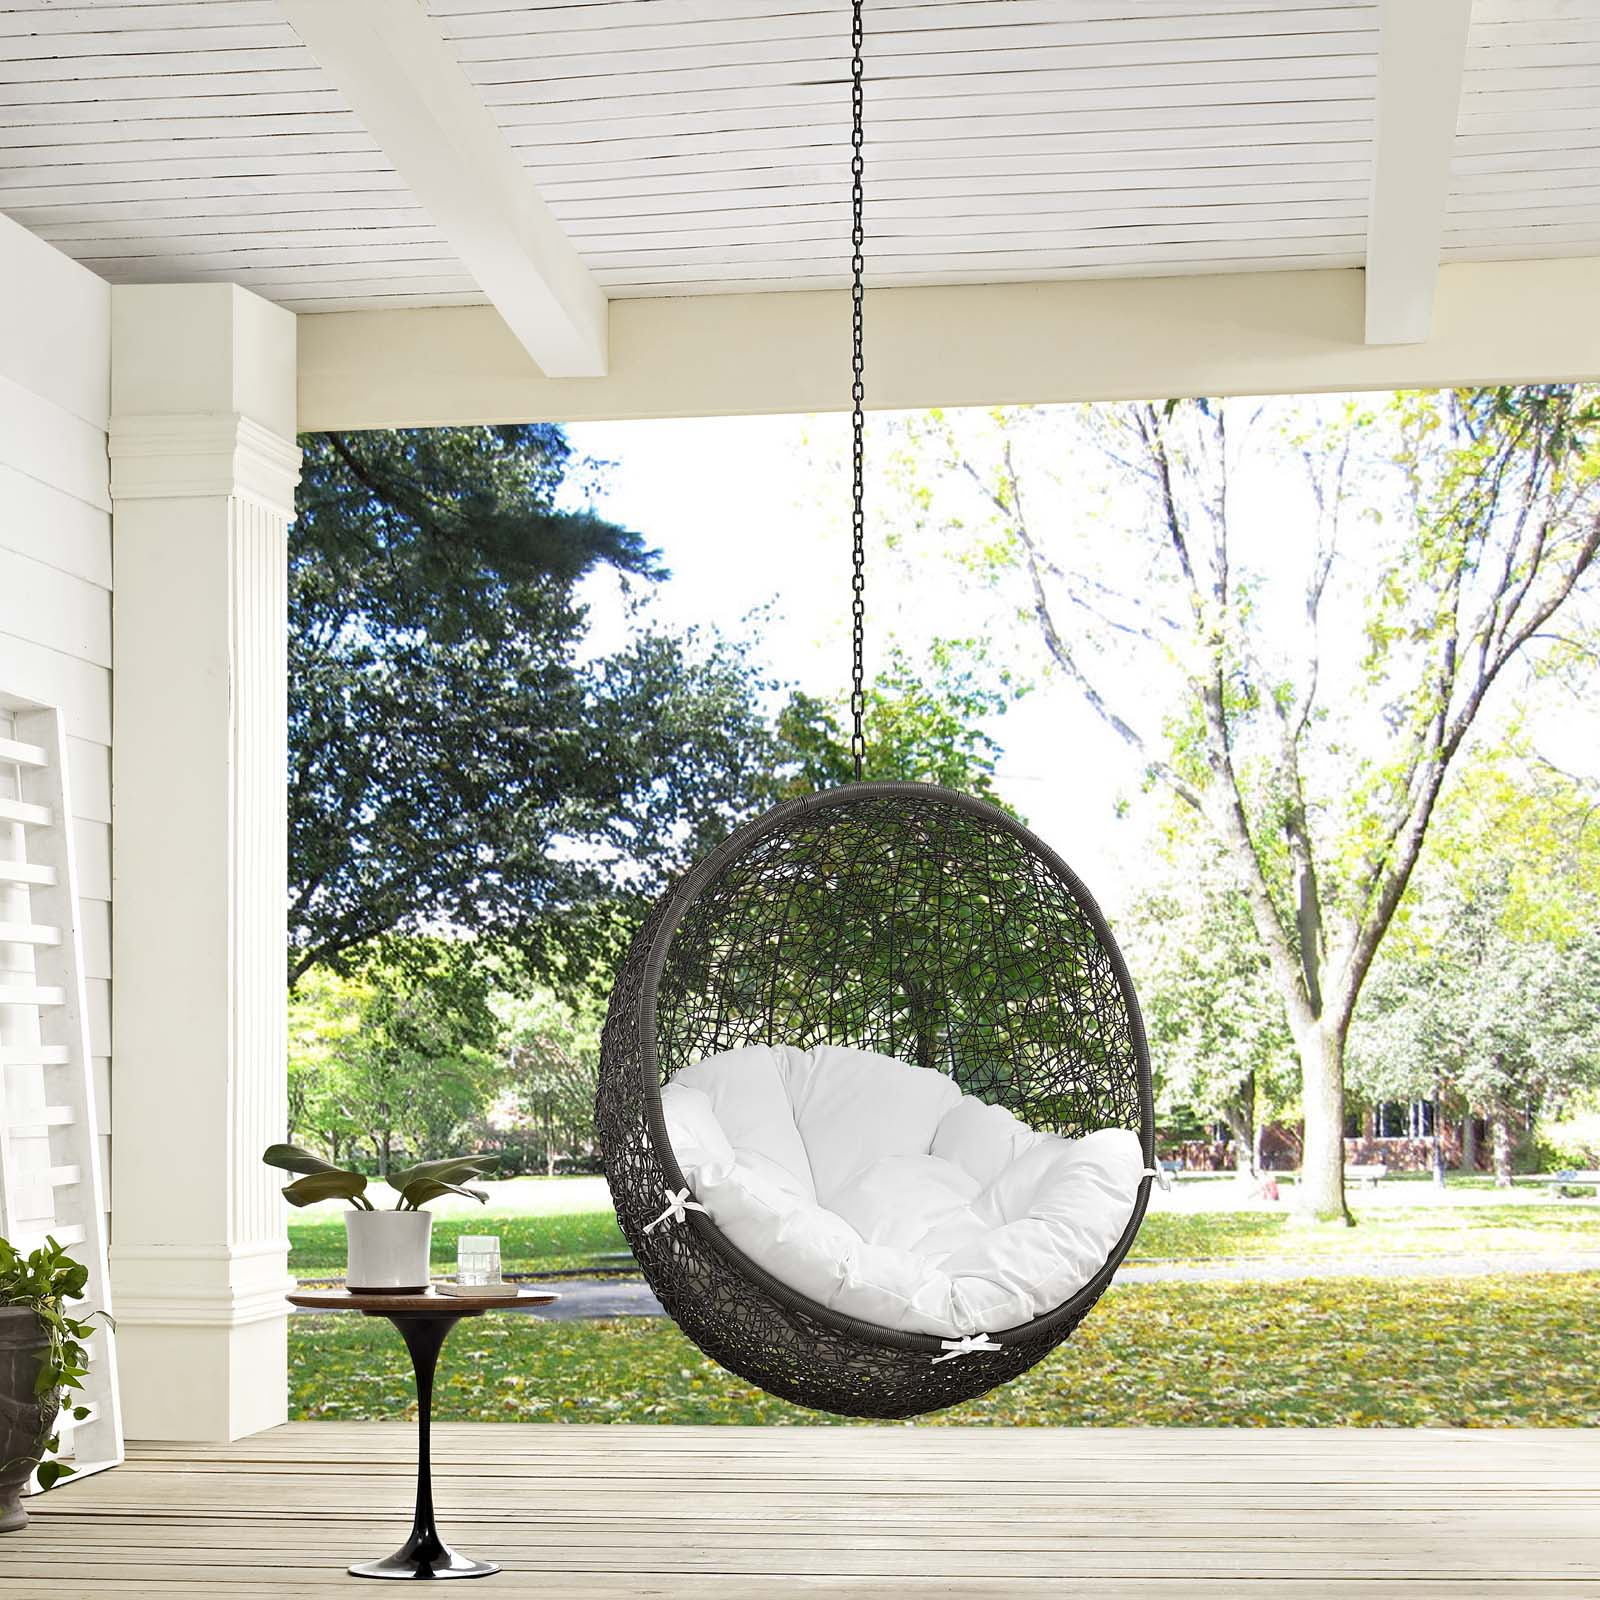 Patio Swing Chairs Sale: Modway Outdoor Lounge Chairs On Sale. EEI-2654-WHI-WHI